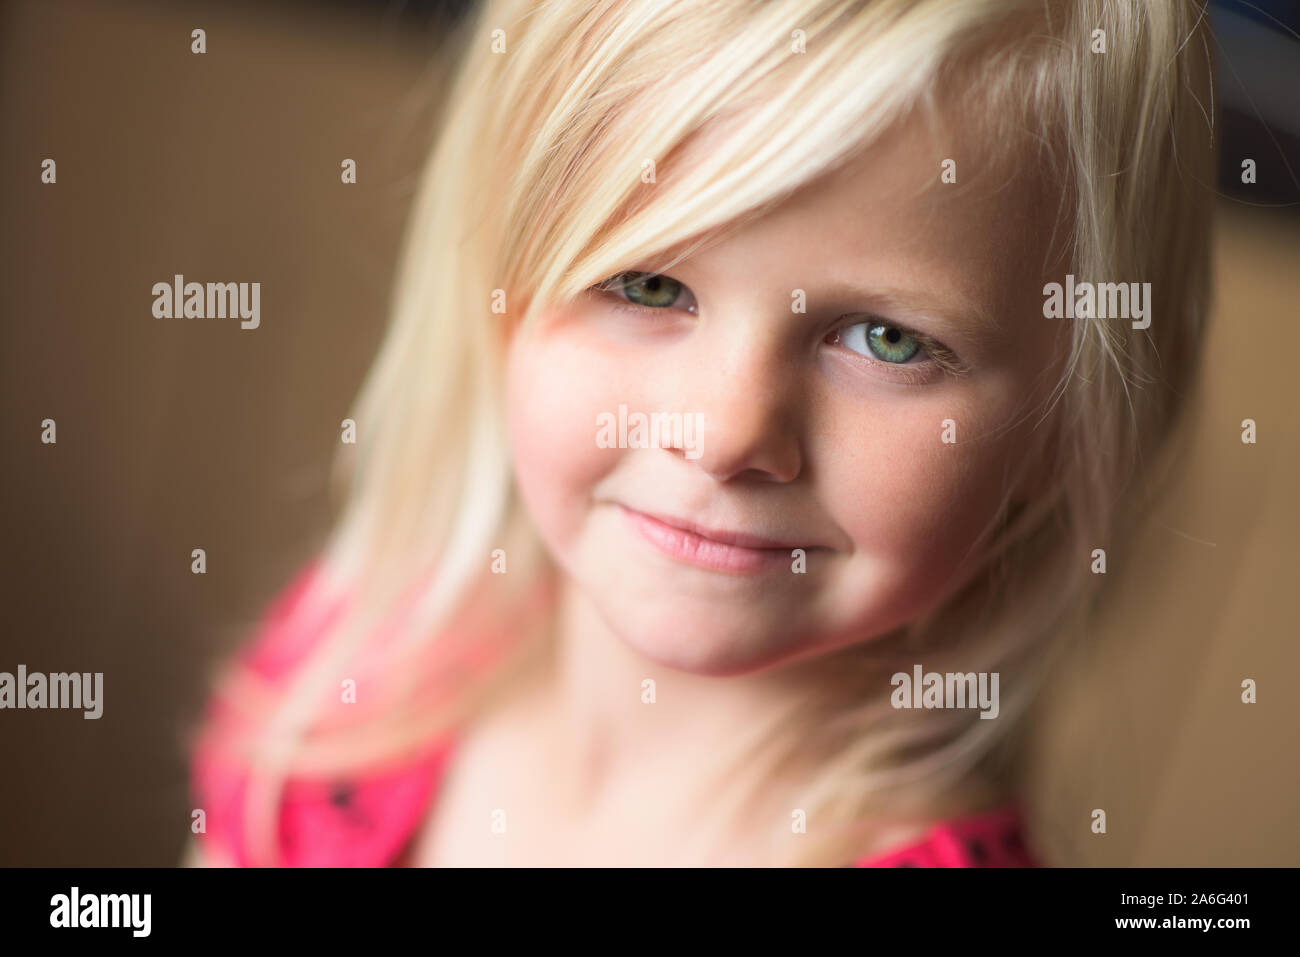 Pretty Green Eye Girl Blonde High Resolution Stock Photography And